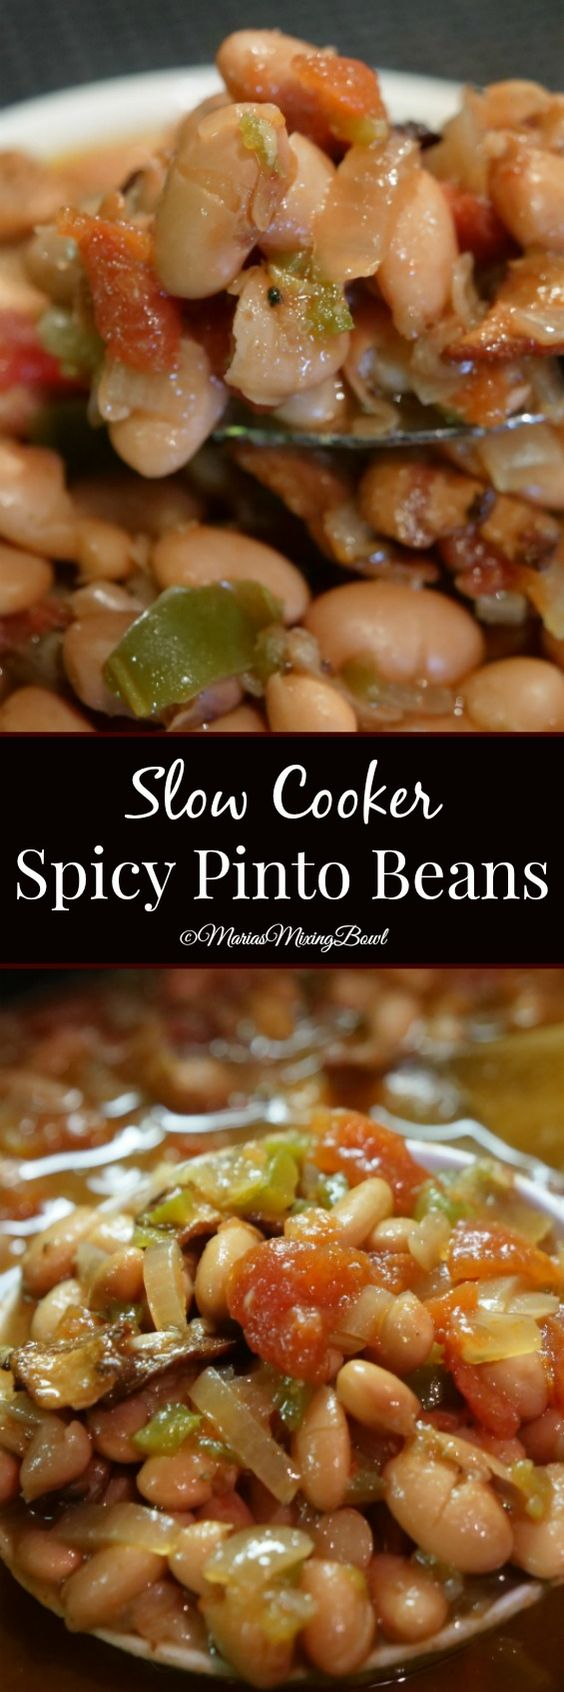 Slow Cooker Spicy Pinto Beans - Spicy pinto beans made in the slow cooker are the perfect side dish for barbecues, potlucks and picnics. Delicious served with a piece of cornbread!